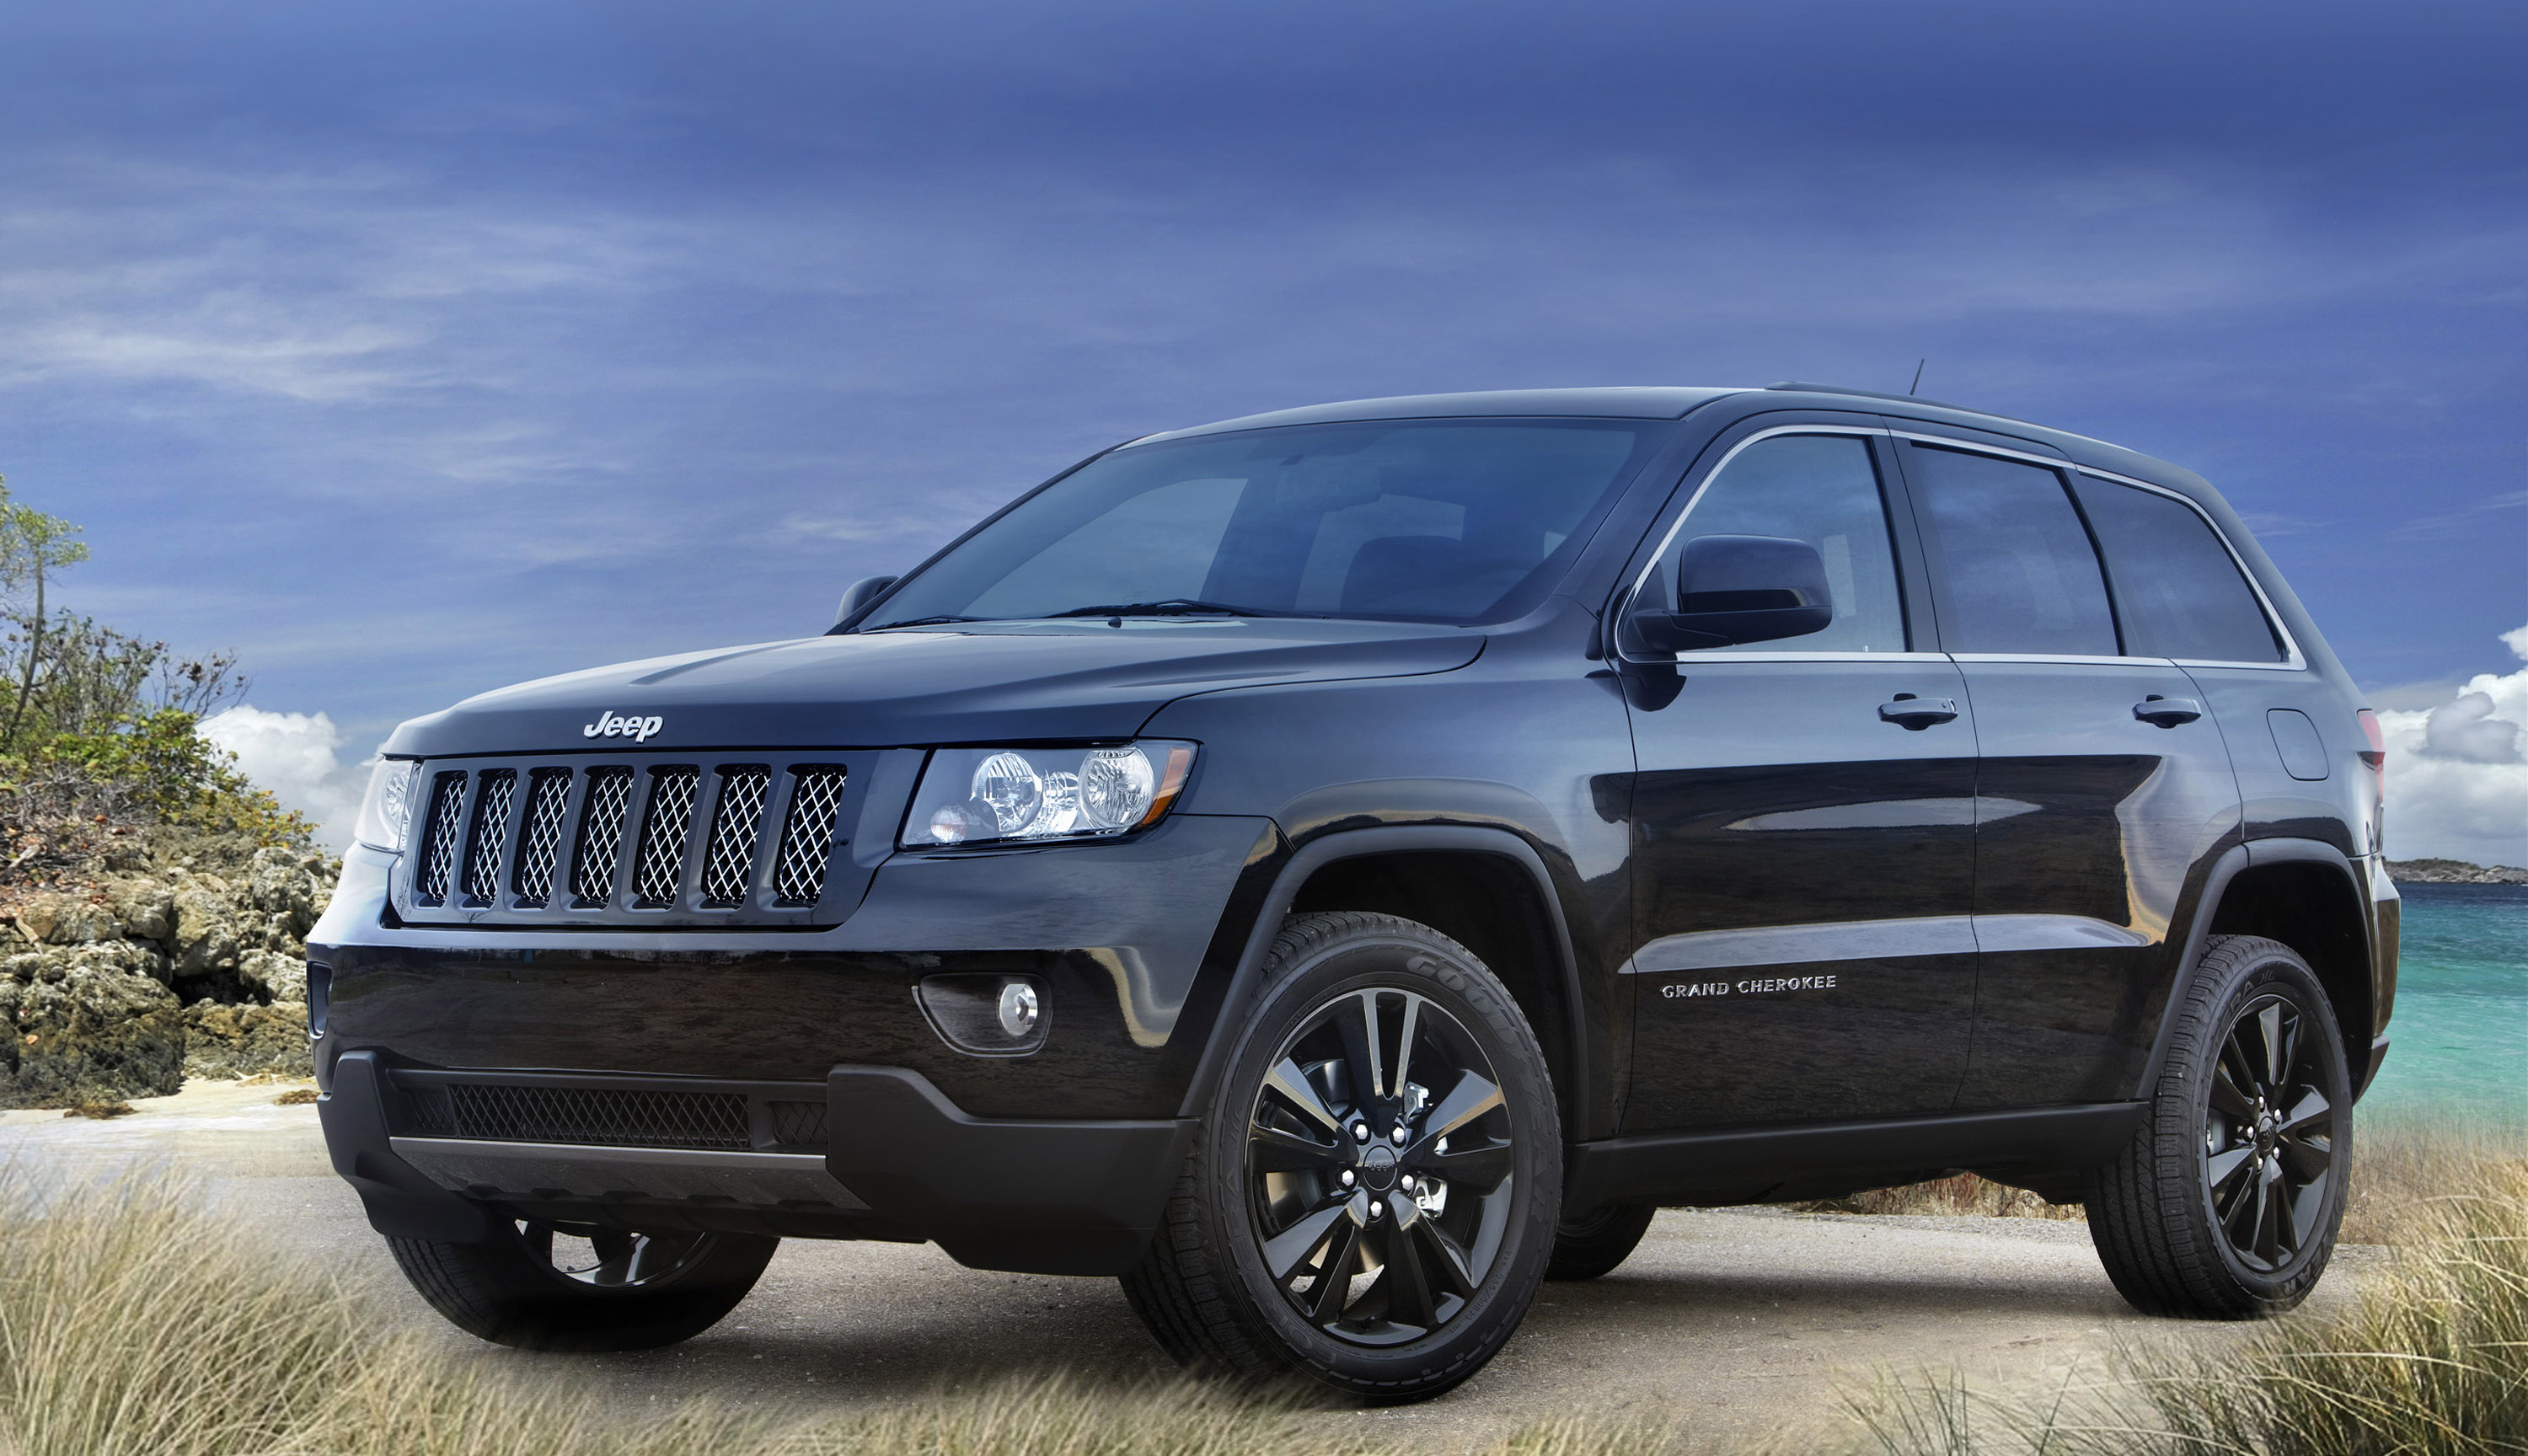 2012 jeep grand cherokee altitude - picture 67186